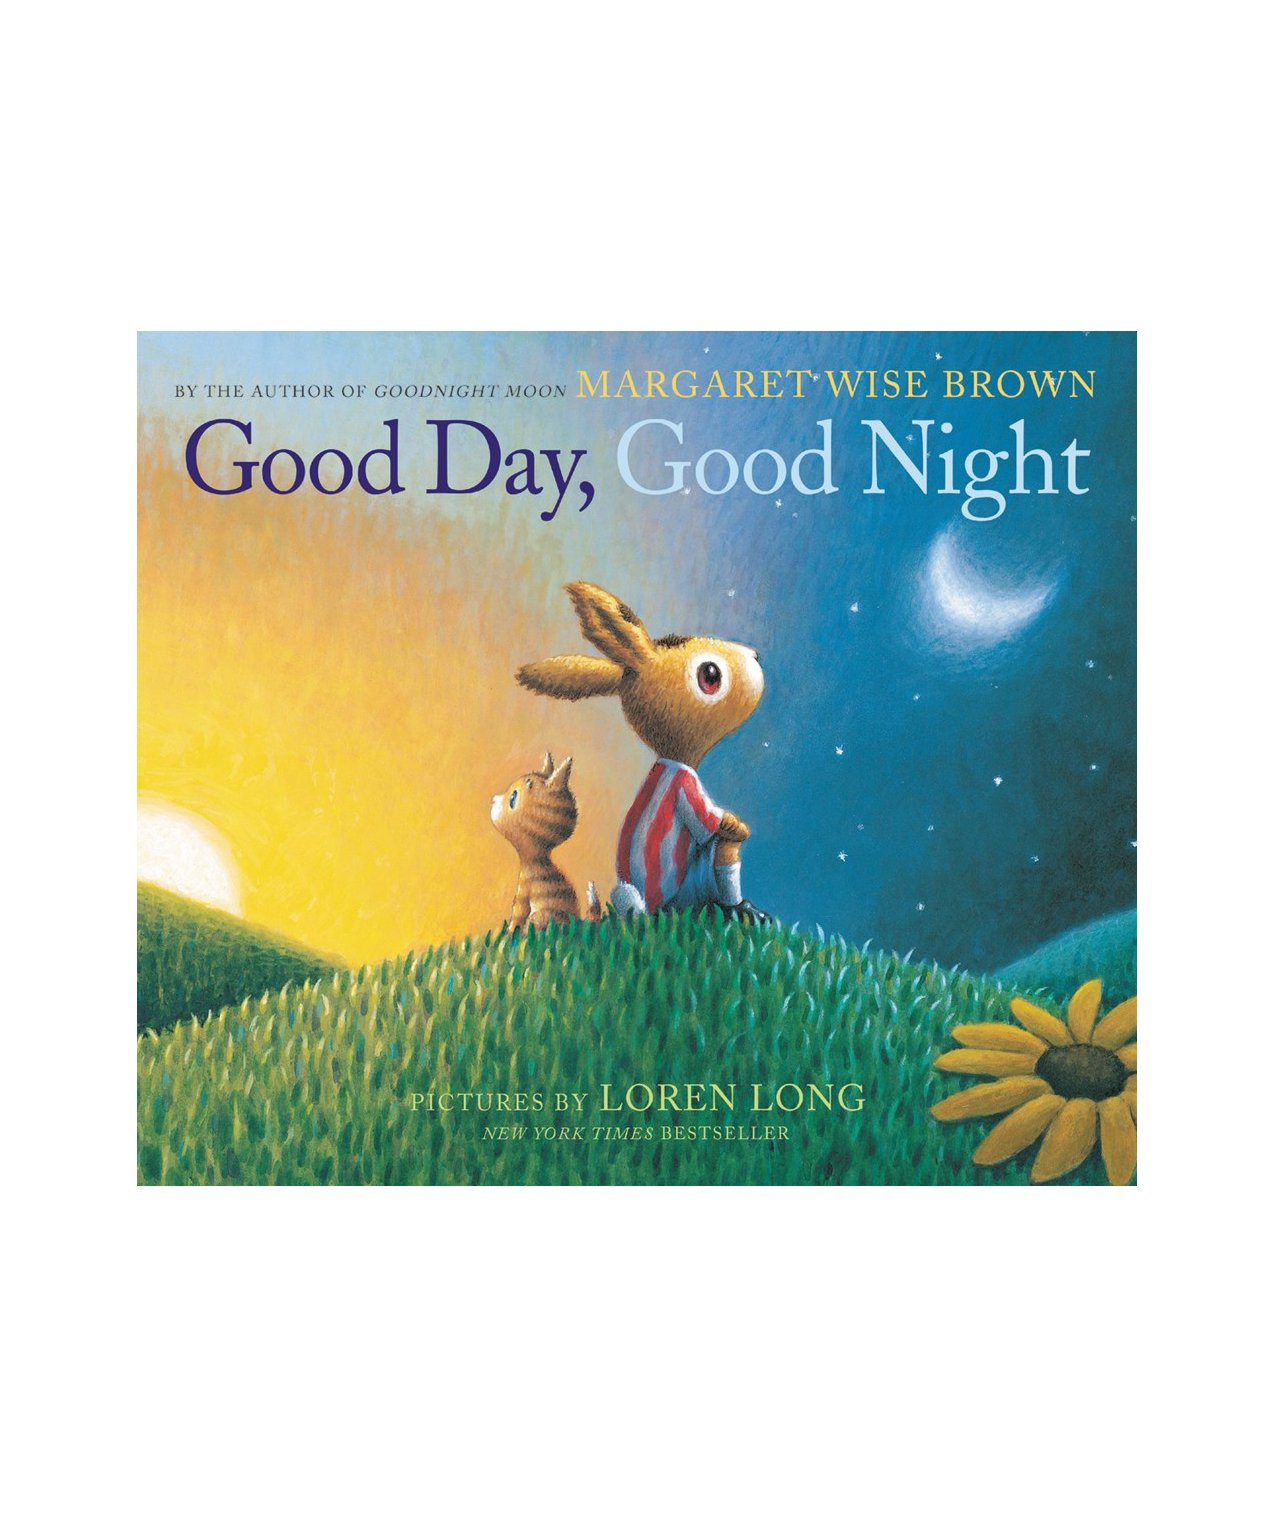 Memorized Goodnight Moon? Pick Up This Never-Before-Published Book from Margaret Wise Brown